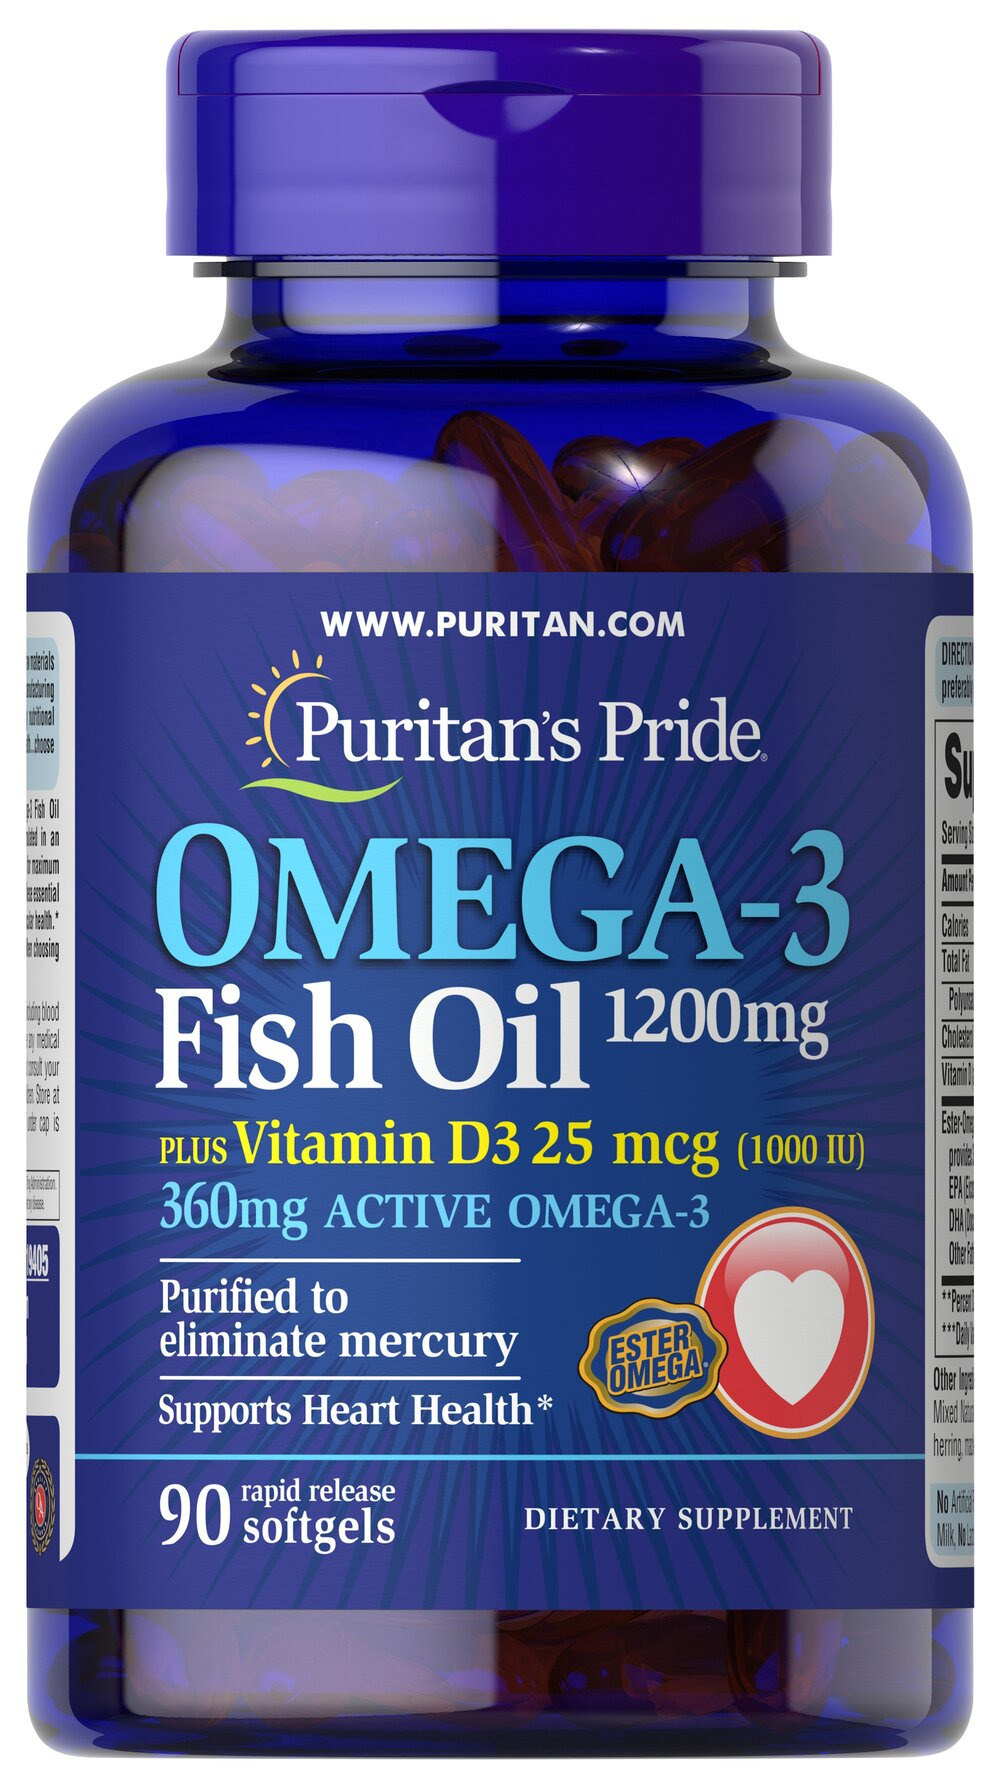 Omega 3 Fish Oil 1200 mg  plus Vitamin D3 1000 IU Thumbnail Alternate Bottle View